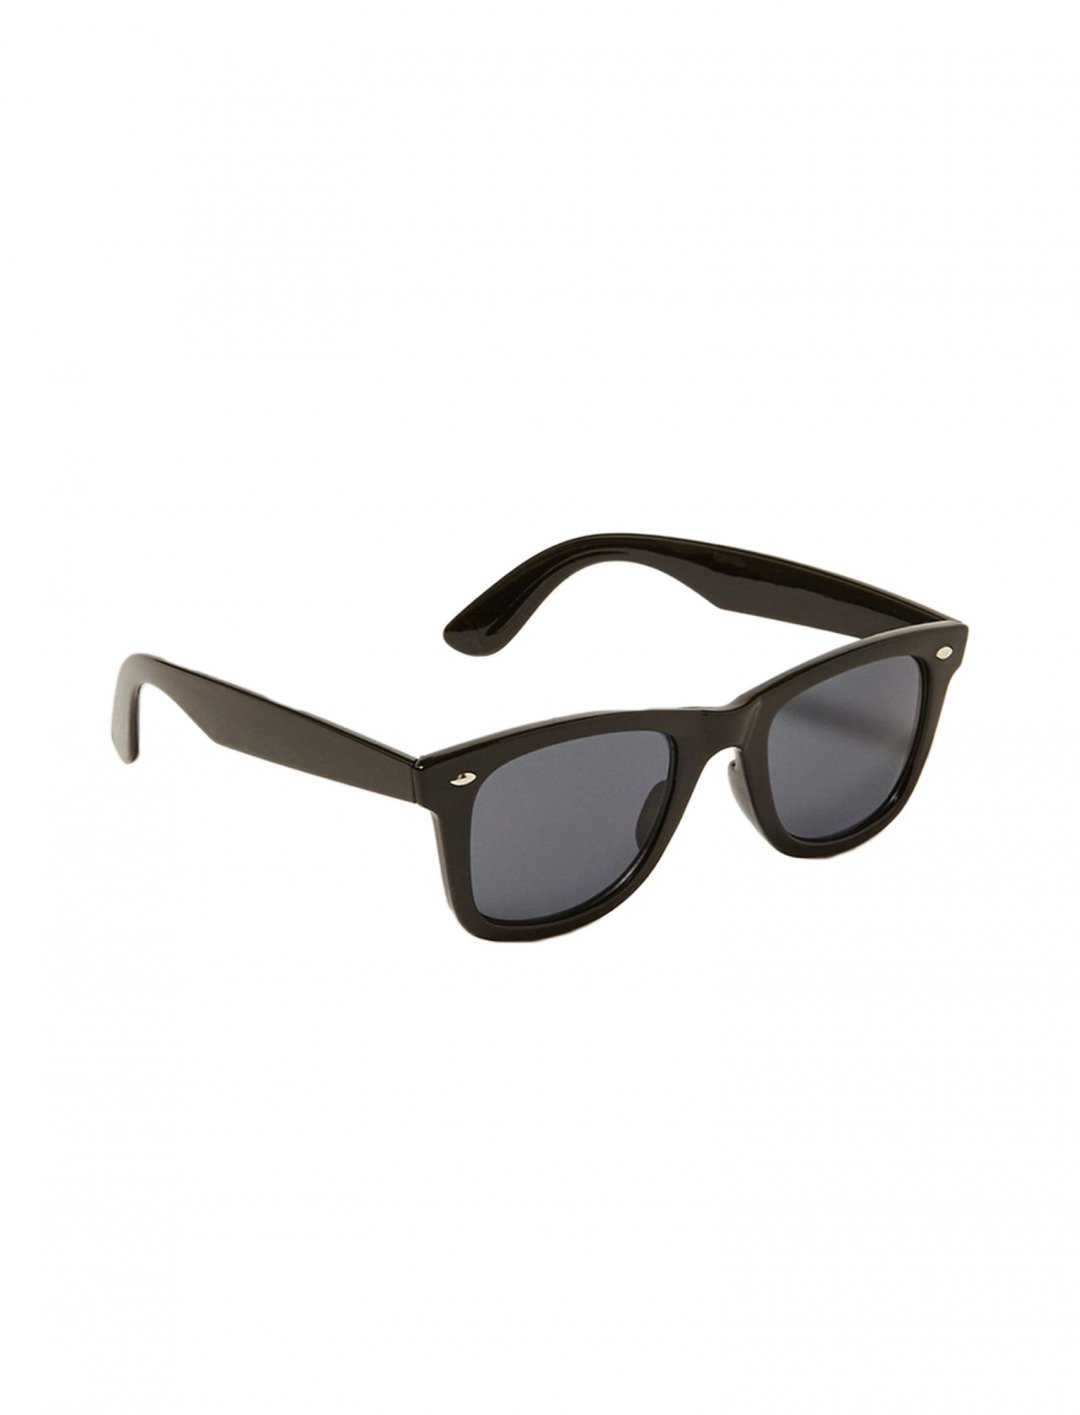 "Black 50'S Sunglasses {""id"":16,""product_section_id"":1,""name"":""Accessories"",""order"":15}"